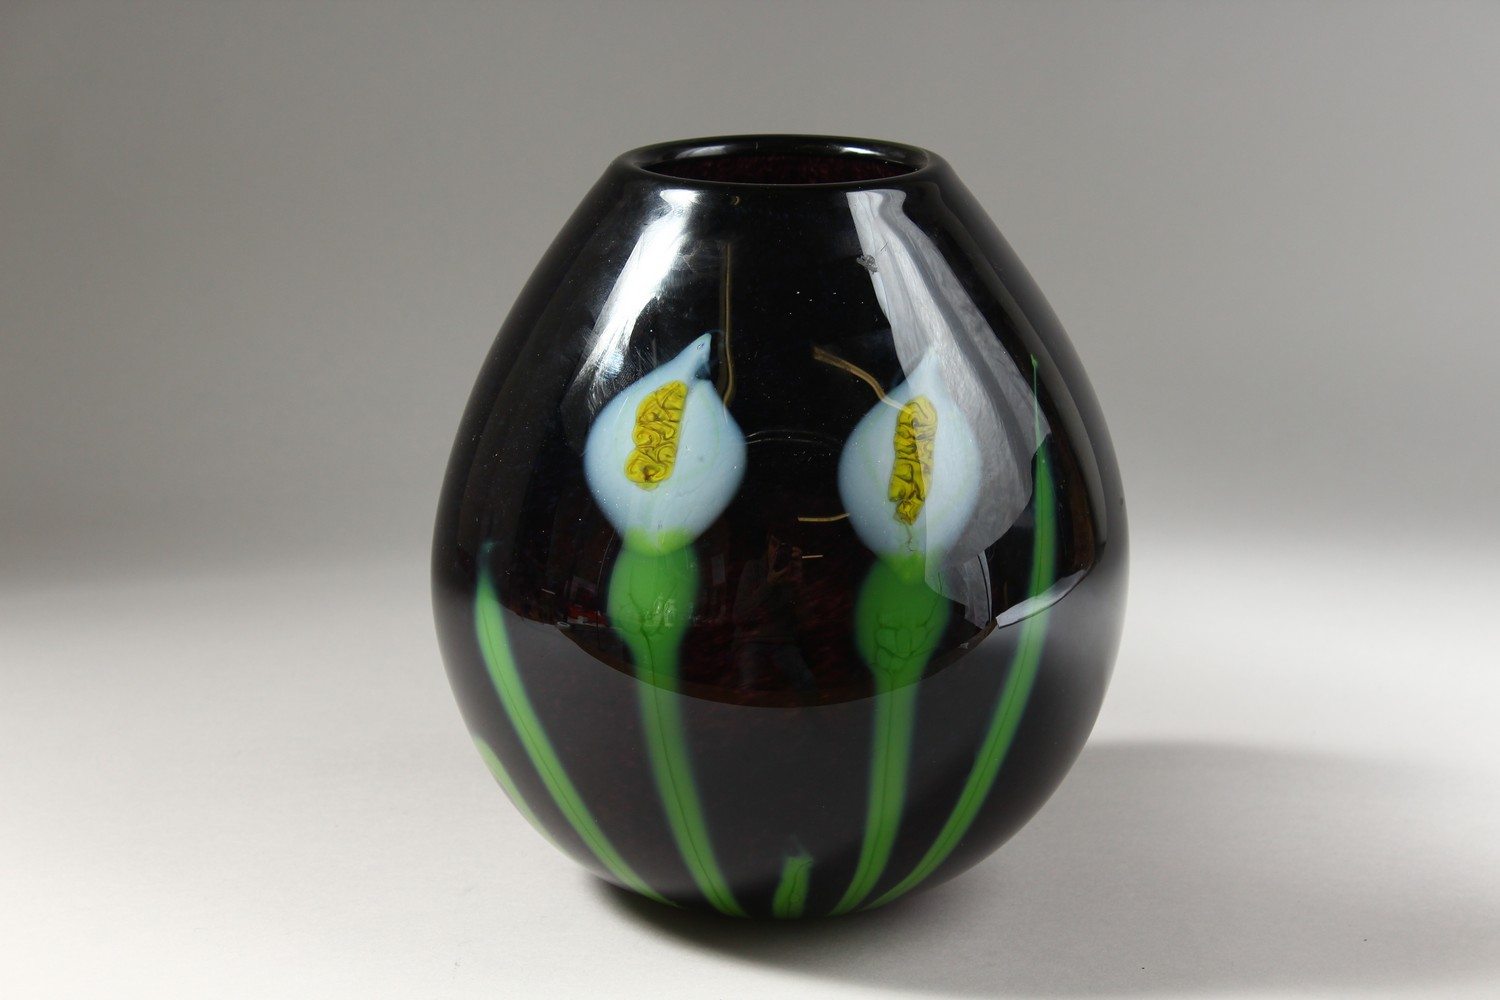 Lot 1055 - AN AMETHYST COLOUR STUDIO GLASS VASE, of bulbous shape, decorated with flowers, signed. 8.5ins